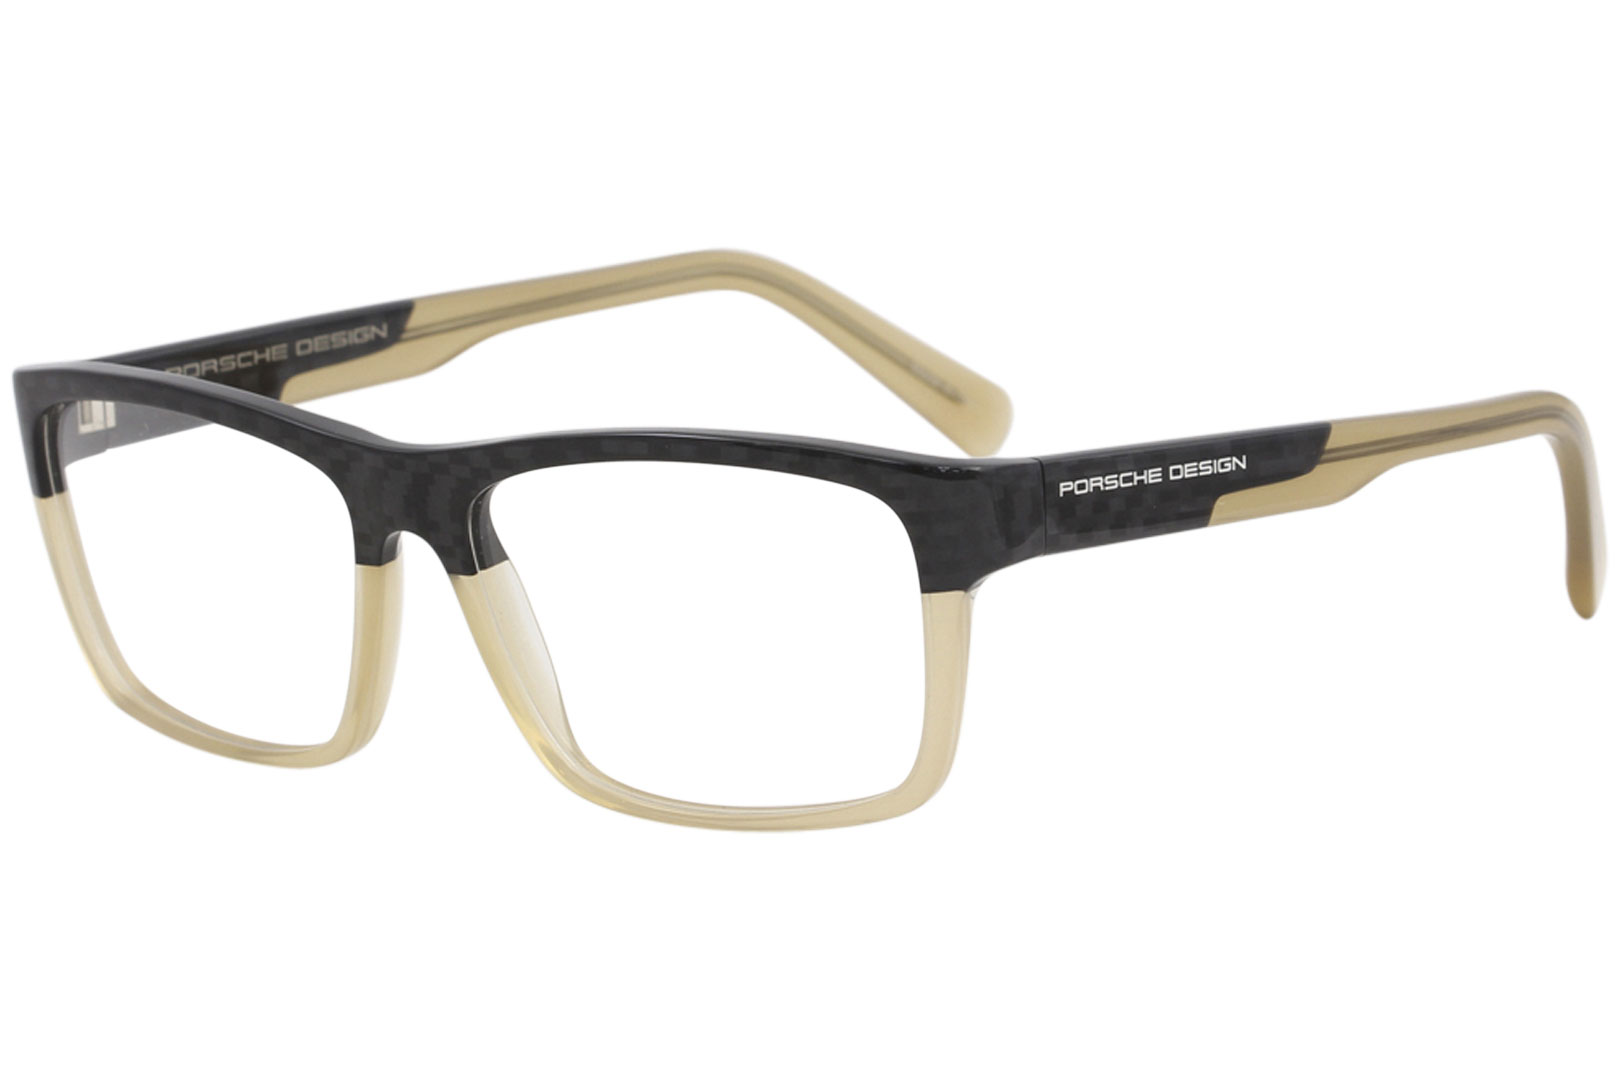 d0b7324fb1a1 Porsche Design Men s Eyeglasses P8190 P 8190 B Carbon Beige Optical ...